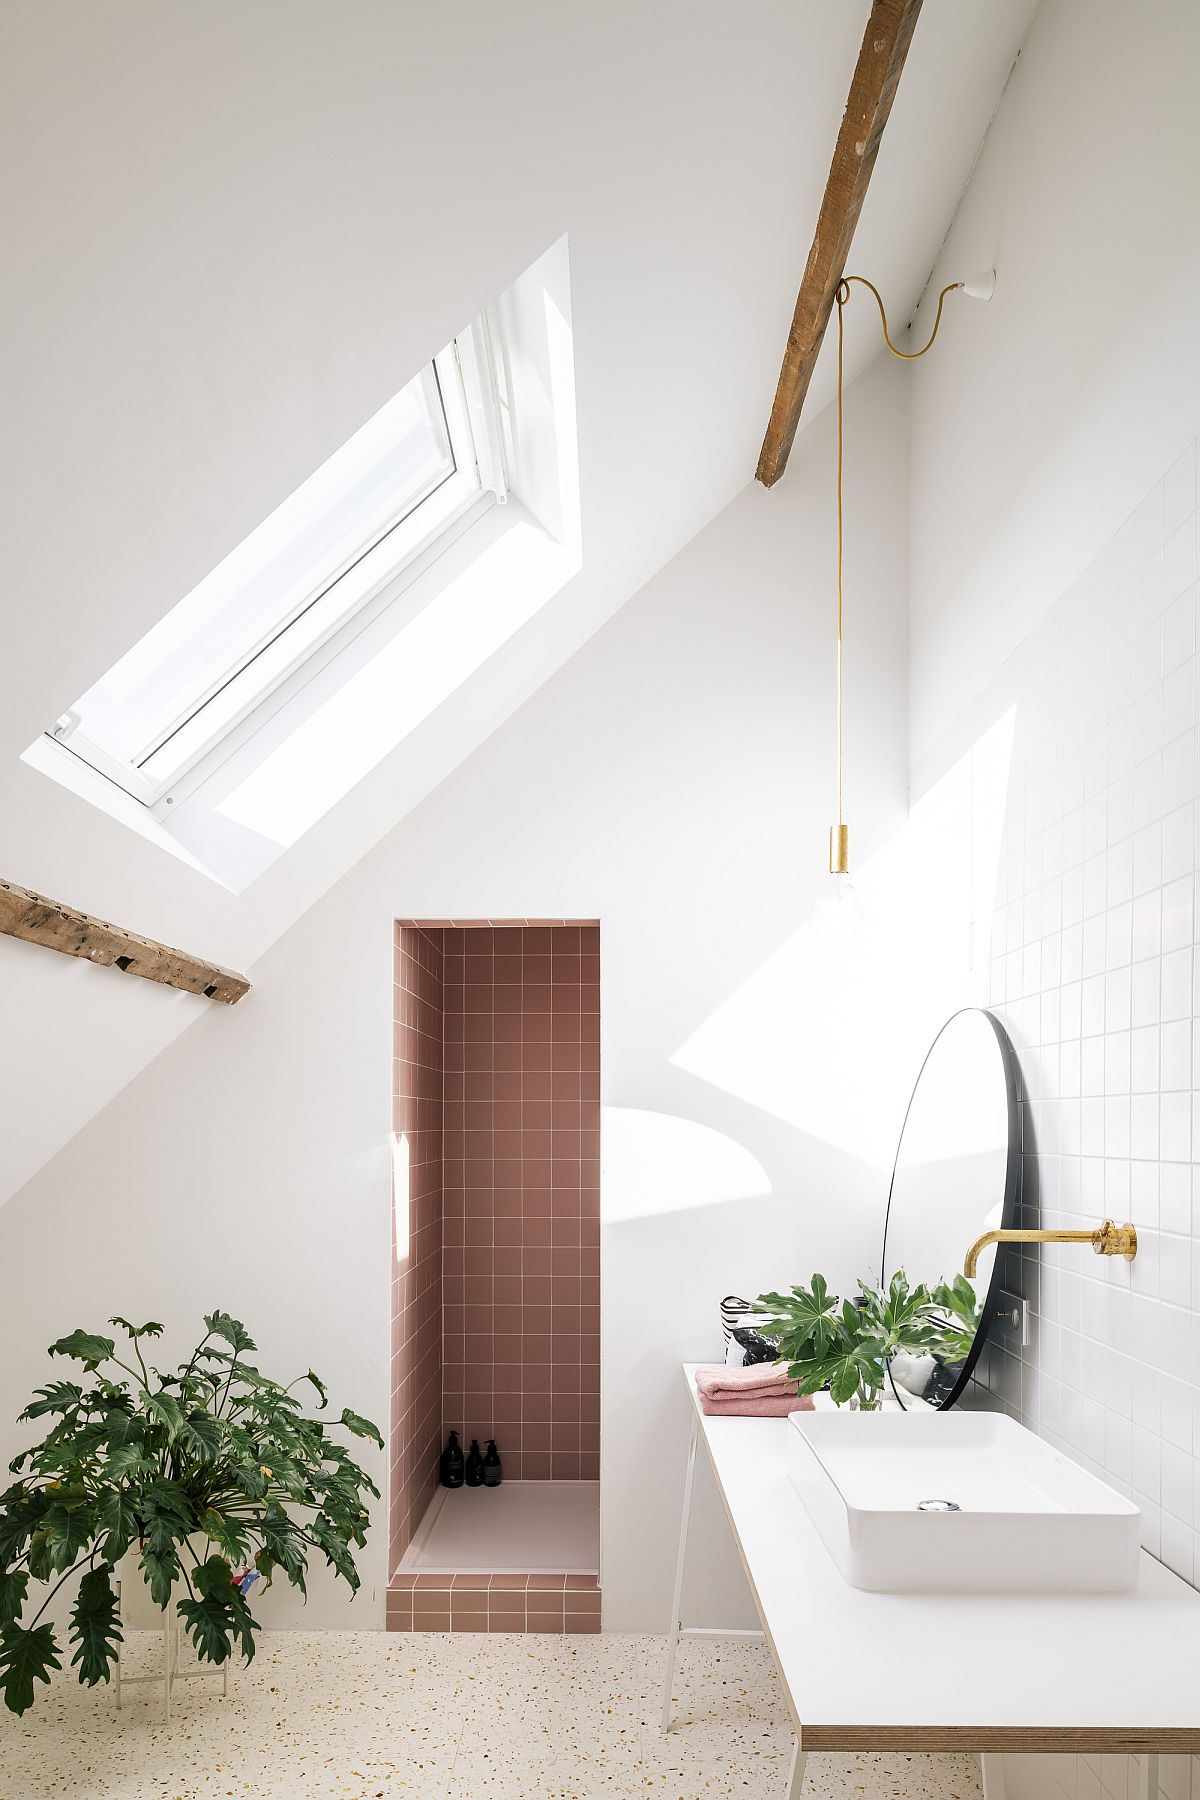 Beautiful window brings natural light into the bathroom with white walls and tiled shower area